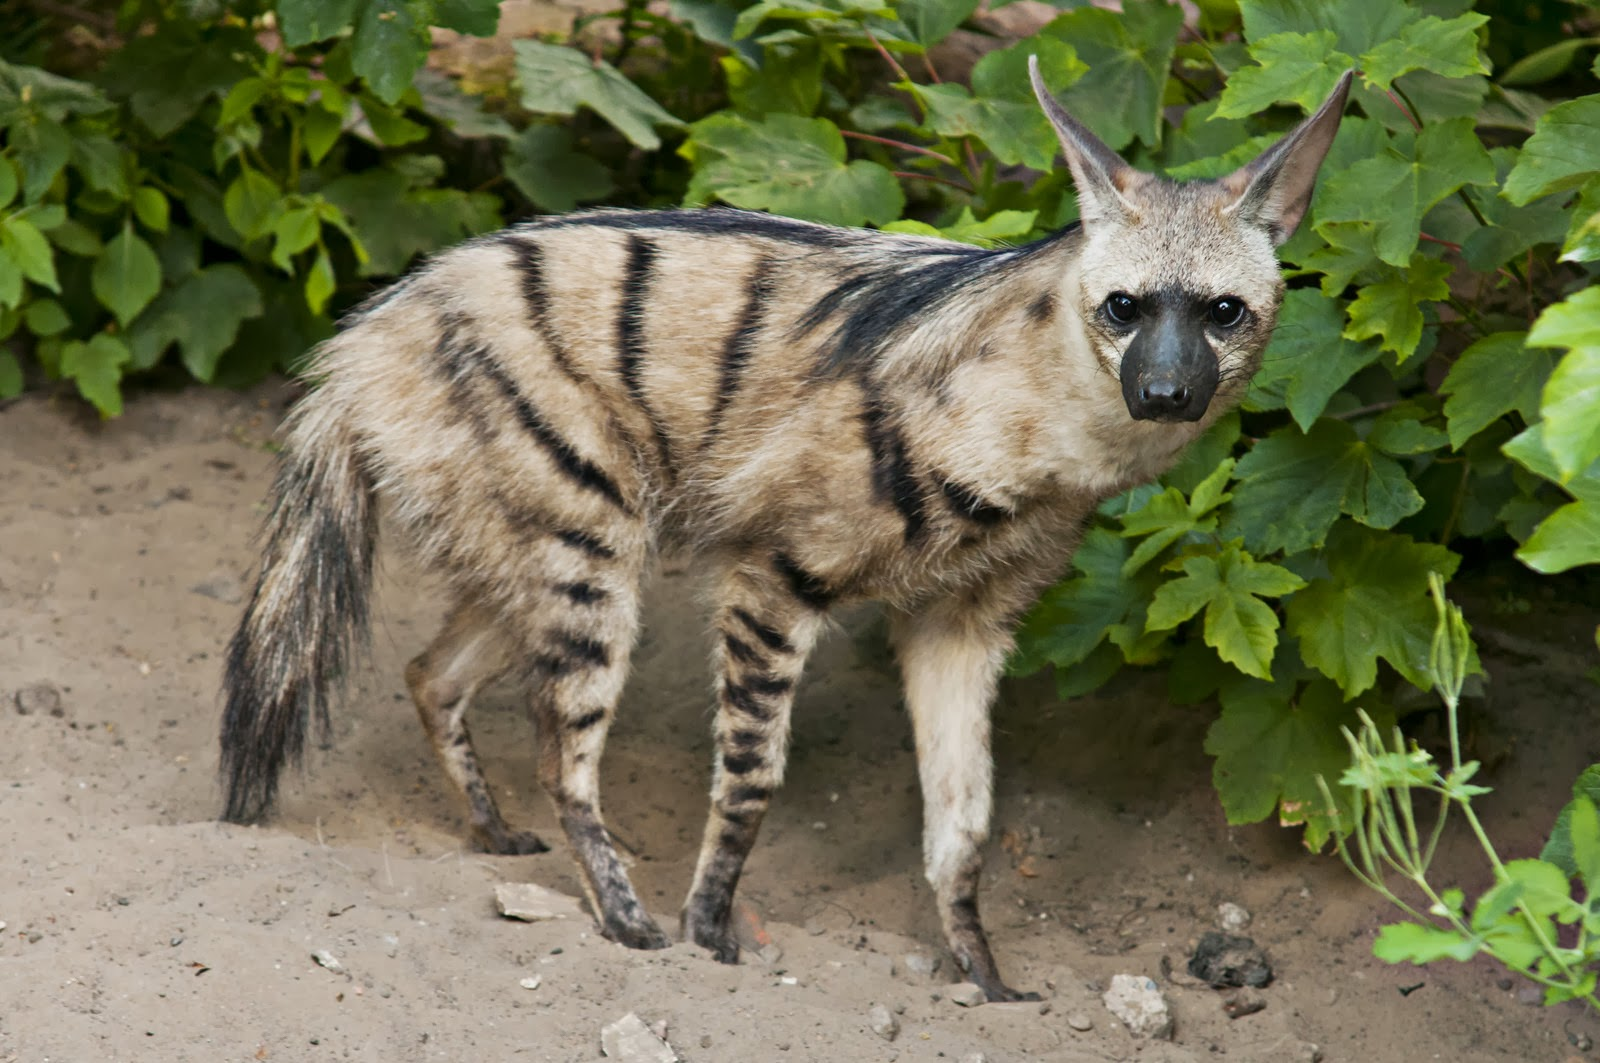 Aardwolf Wallpapers Aardwolf is a little